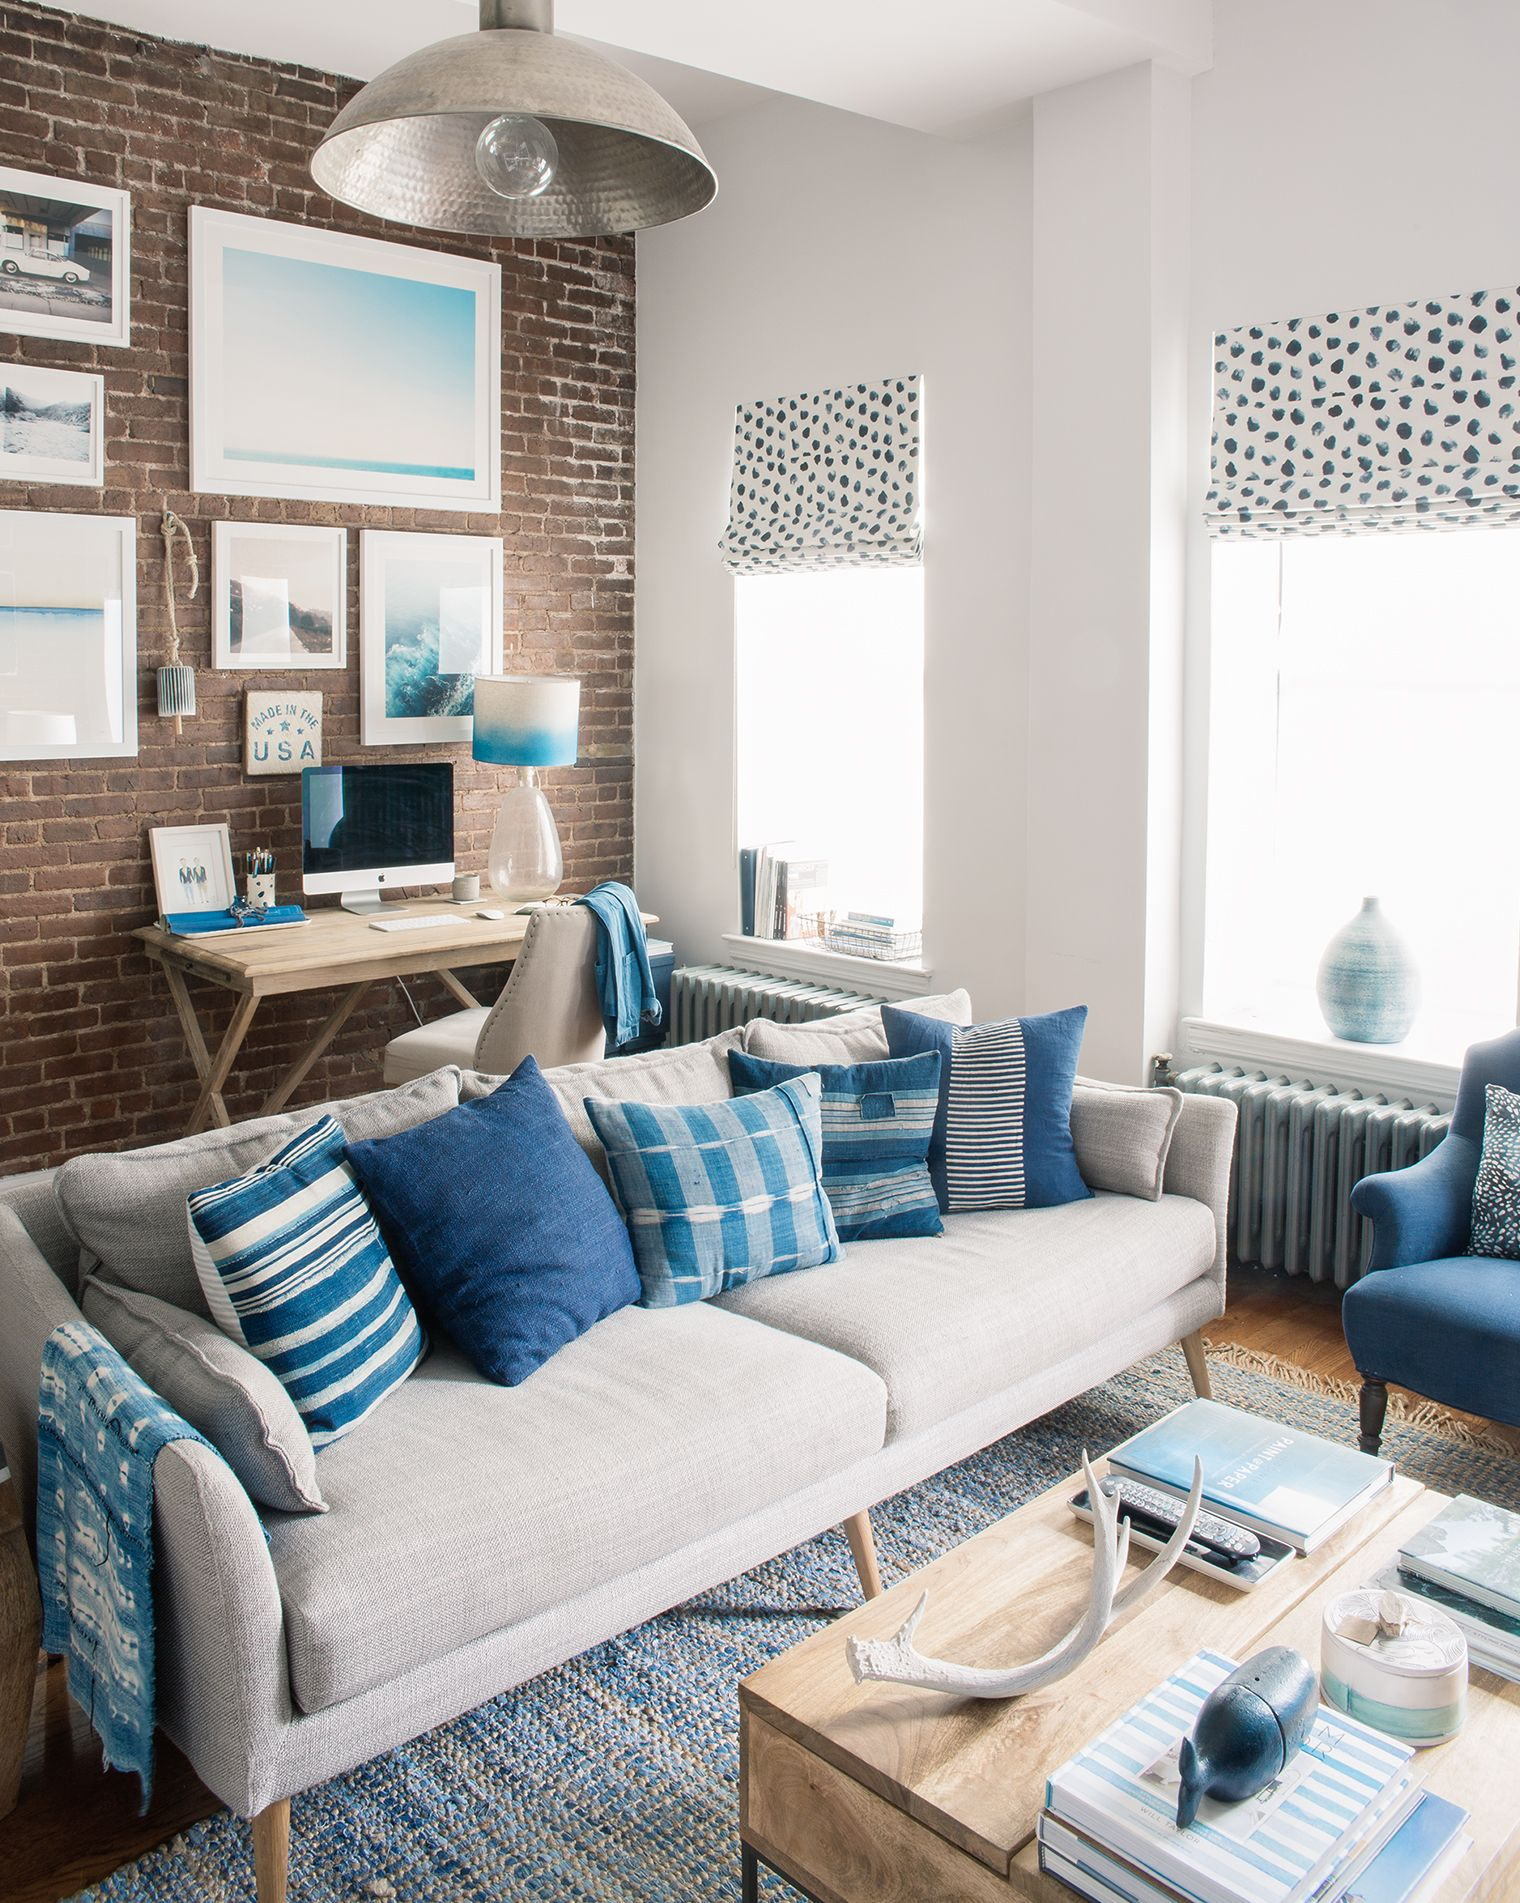 How To Decorate An Nyc Brownstone Apartment Small Apartment Decorating Living Room Ideas Nyc Apartment Decor